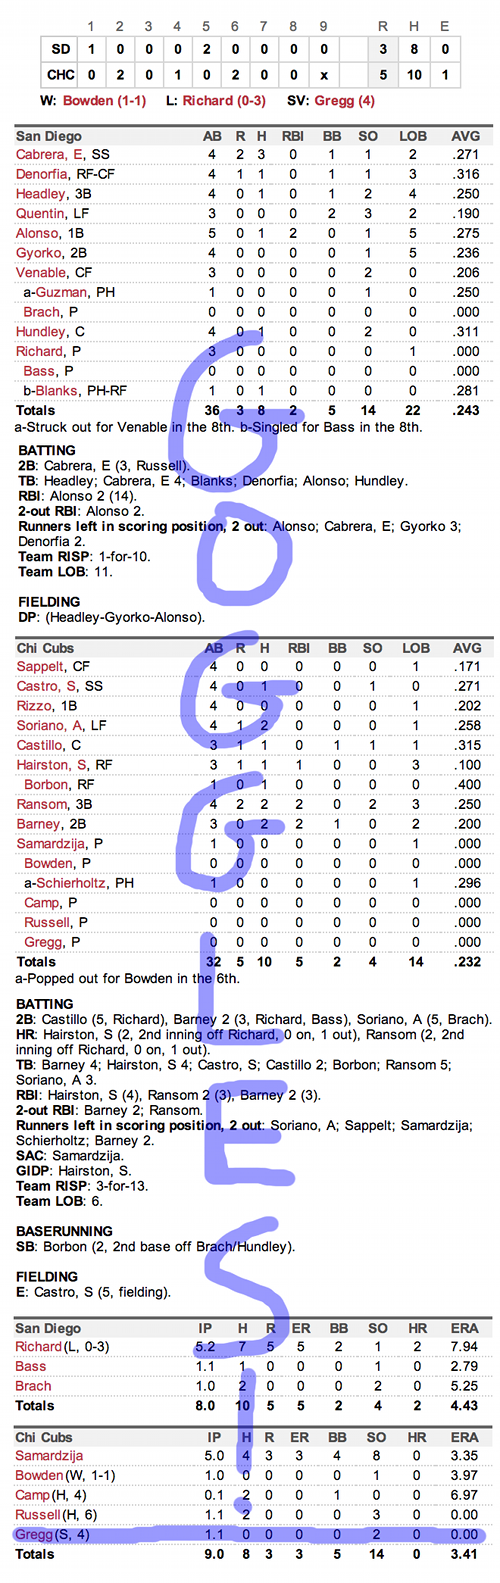 Enhanced Box Score: Padres 3, Cubs 5 – April 29, 2013